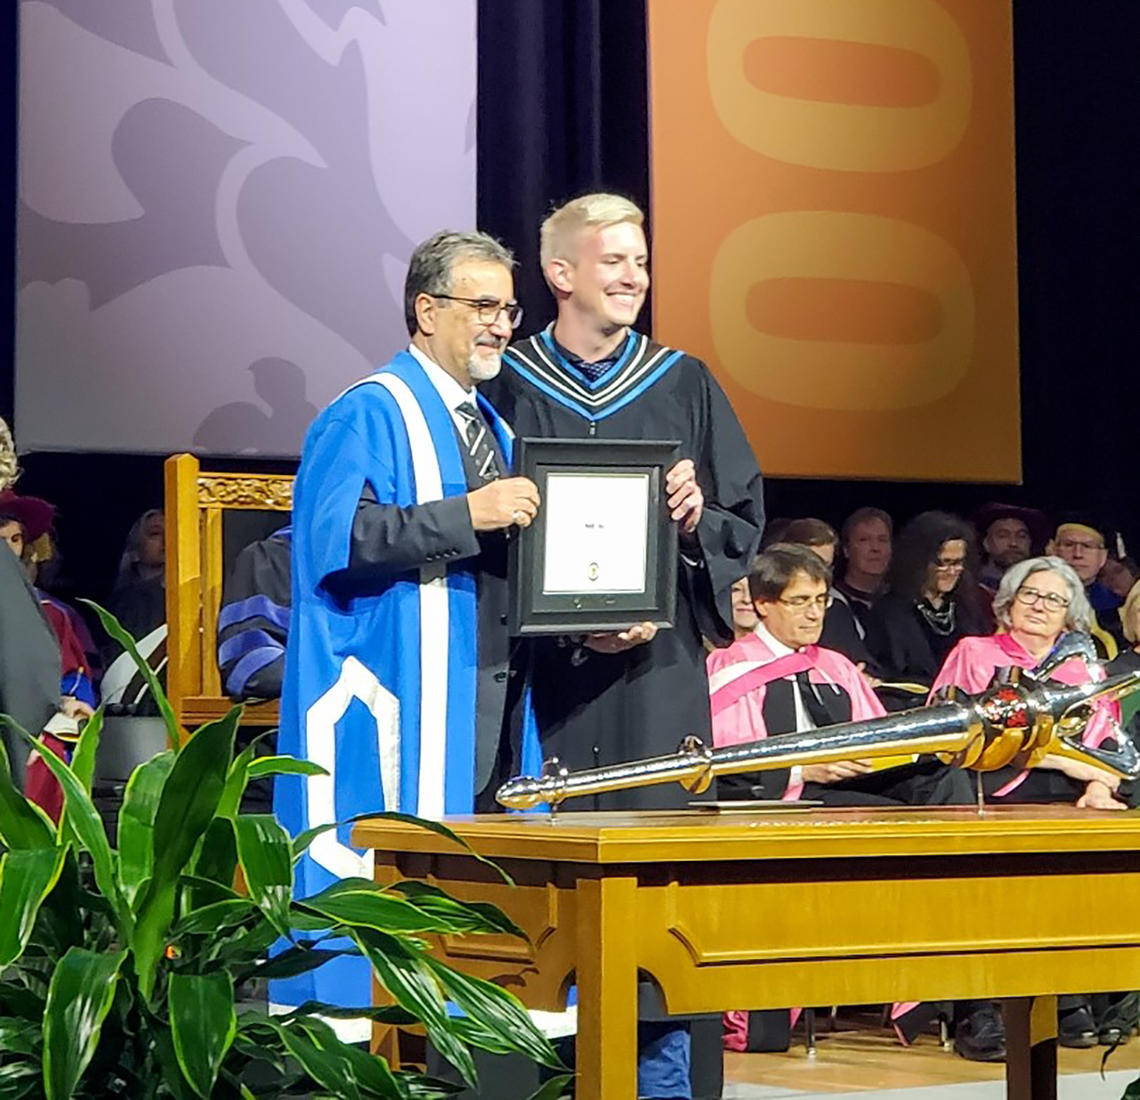 Marc Hall UWaterloo Convocation